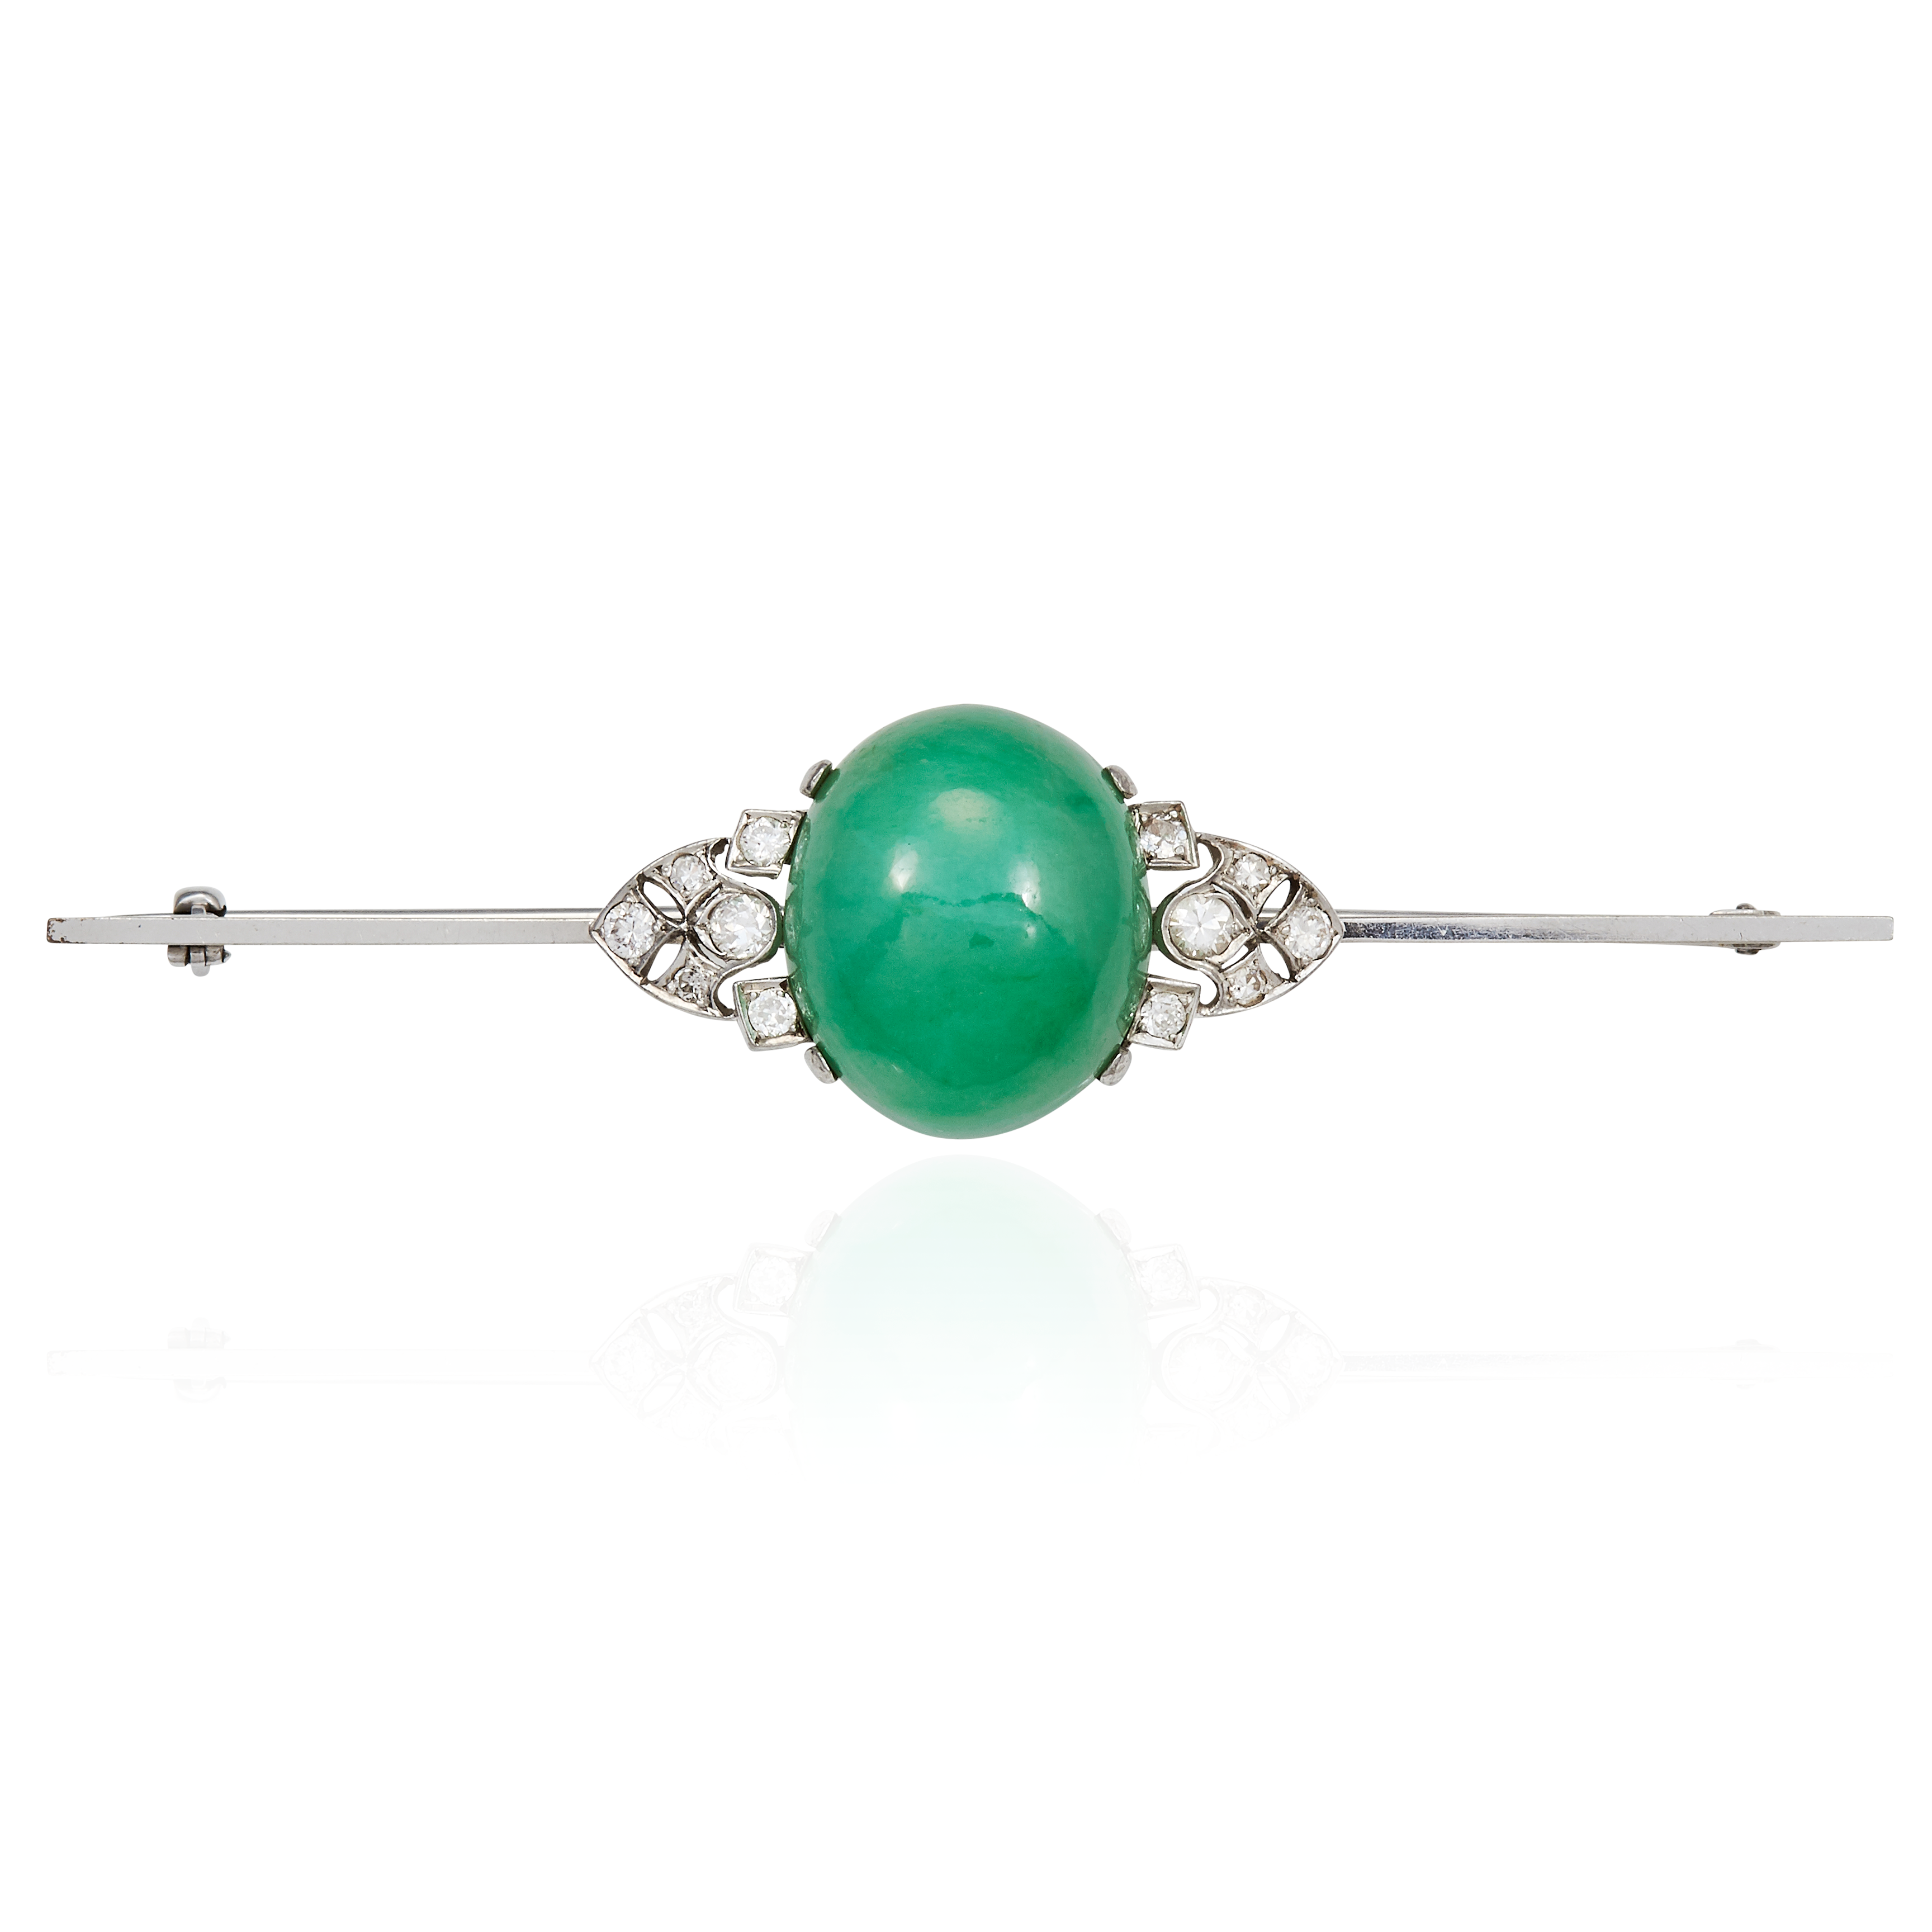 Los 38 - A JADE AND DIAMOND BAR BROOCH in white gold or platinum, set with a central oval jade cabochon